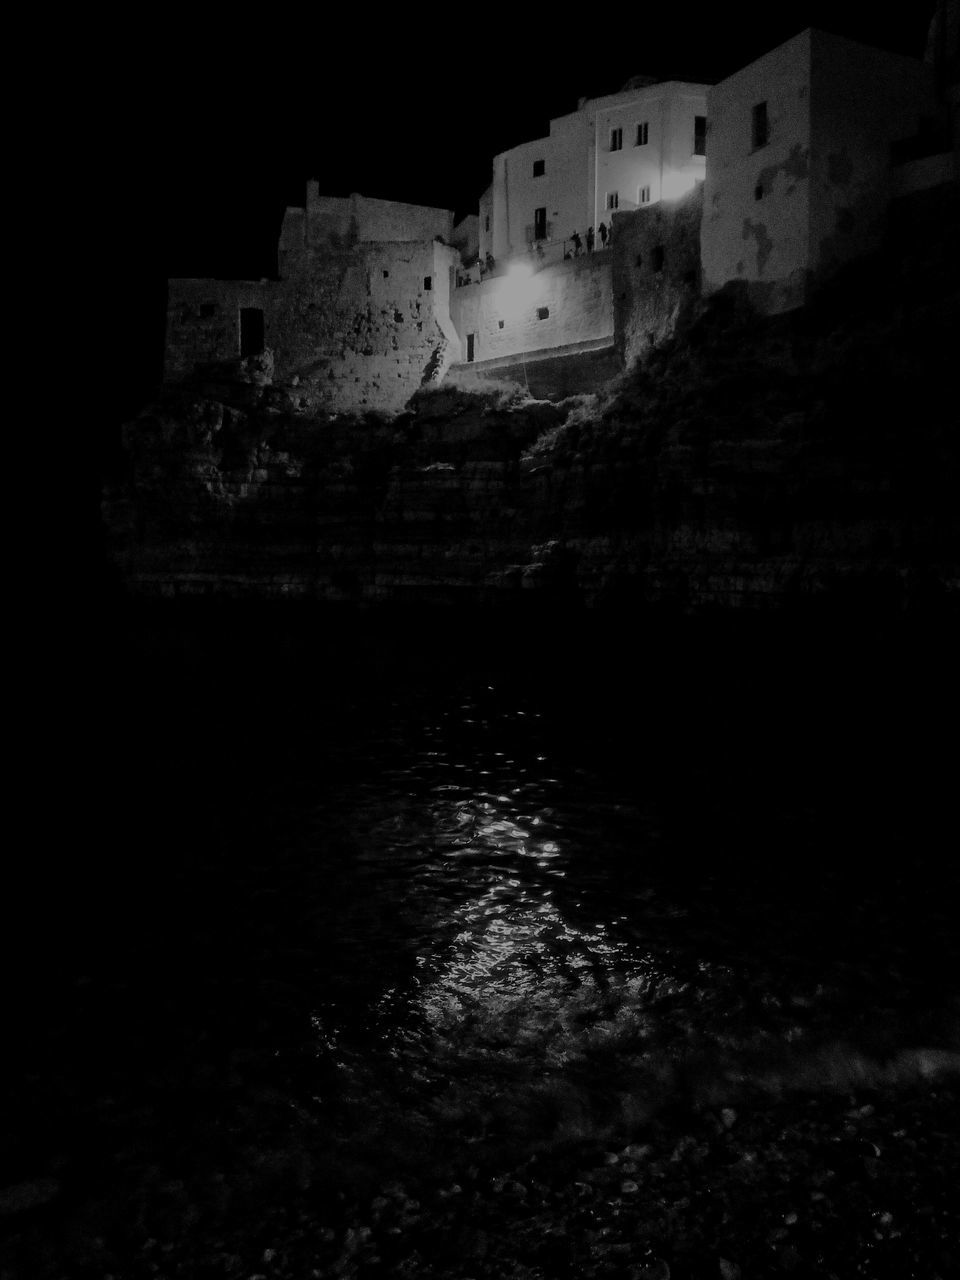 architecture, built structure, building exterior, castle, night, outdoors, history, water, no people, ancient, sky, nature